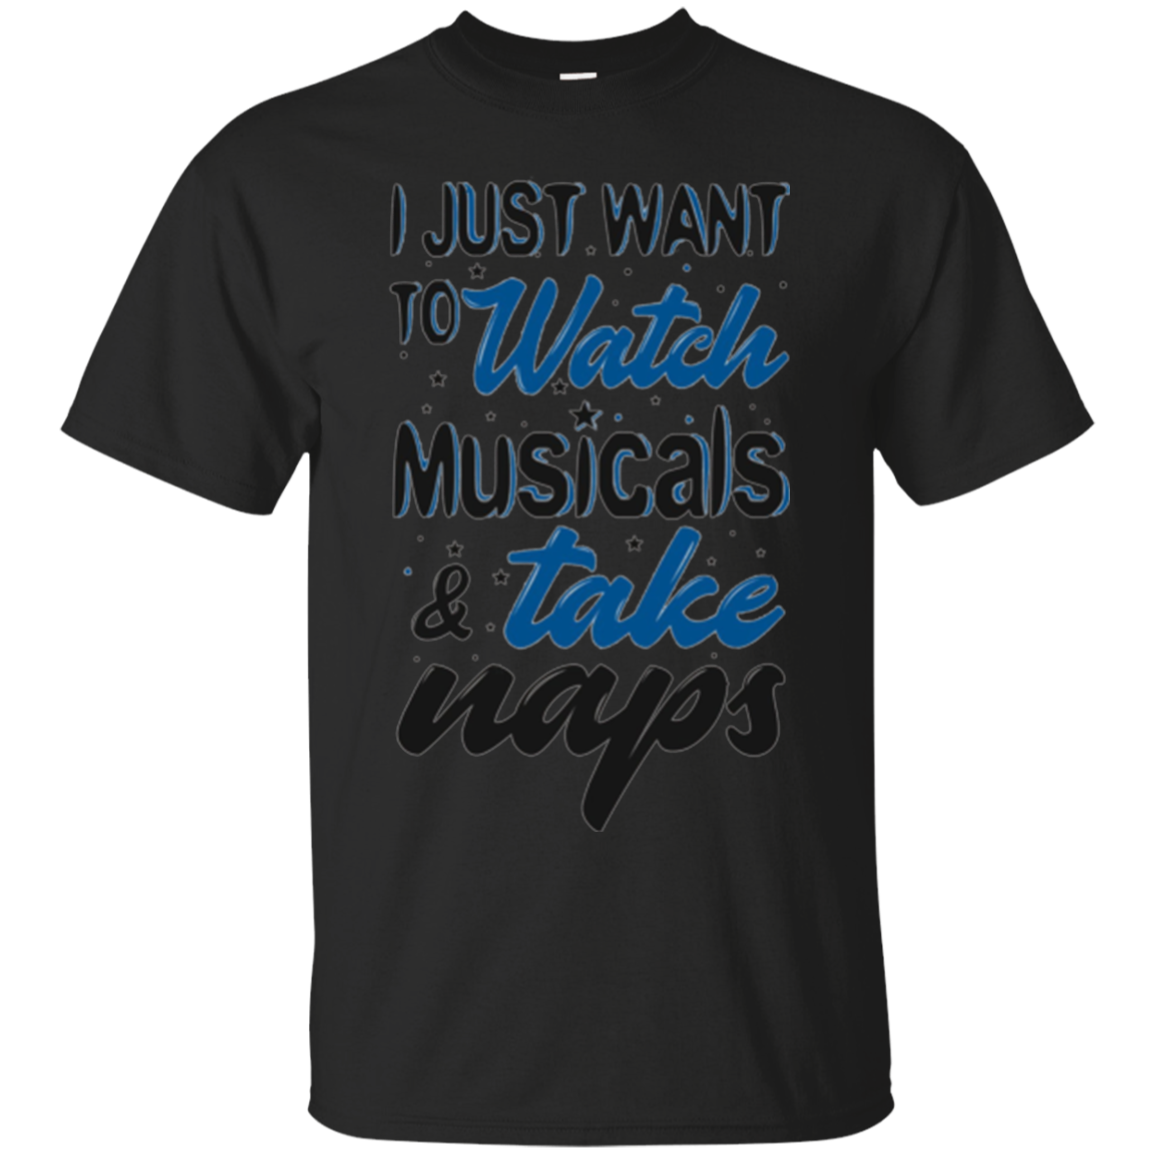 I Just Want to Watch Musicals and Take Naps Funny T-shirt